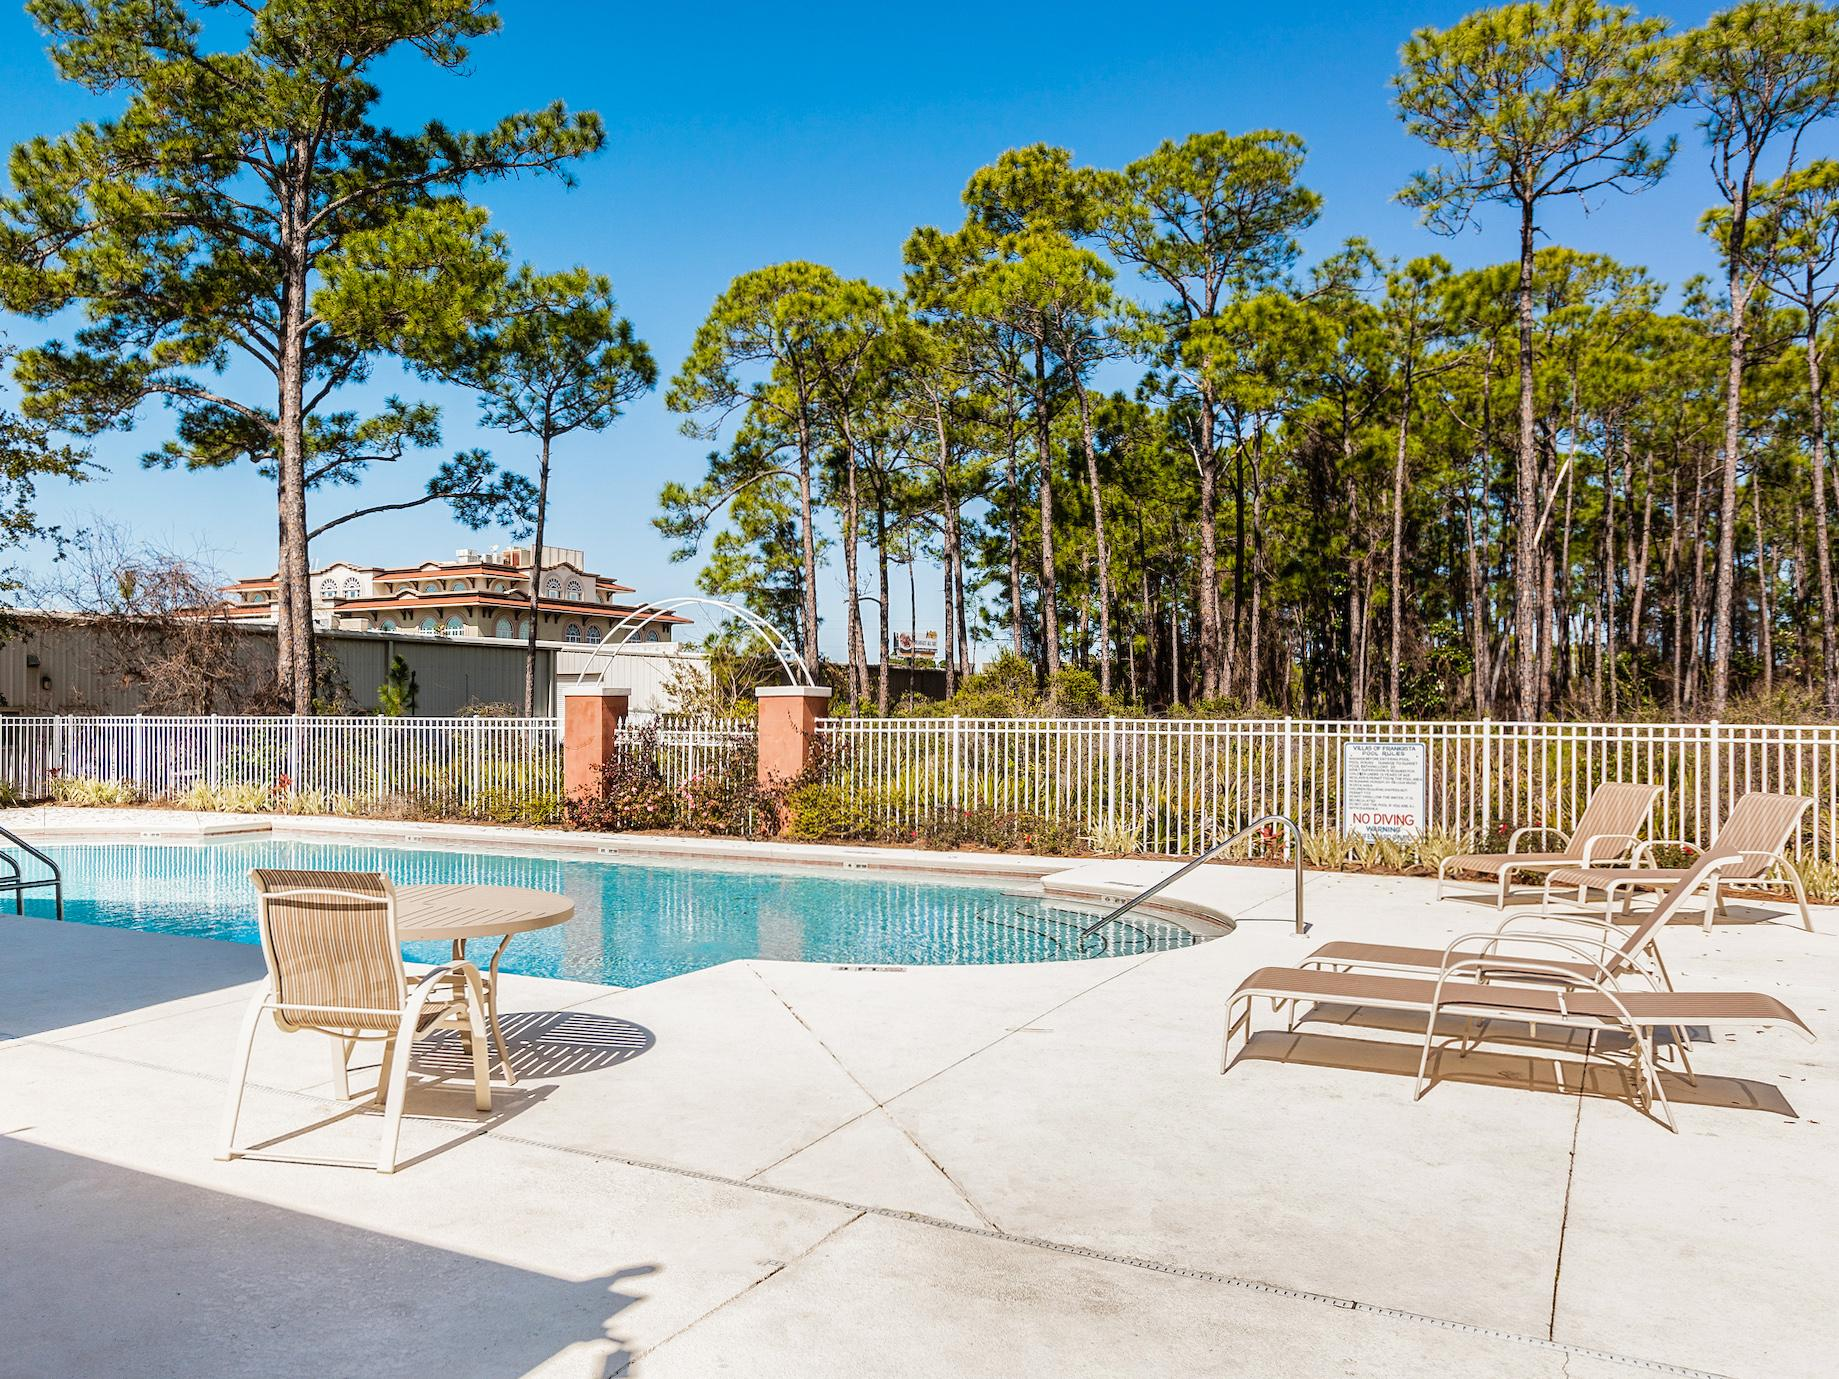 Just 0.2 miles away, the shared pool offers plenty of loungers.